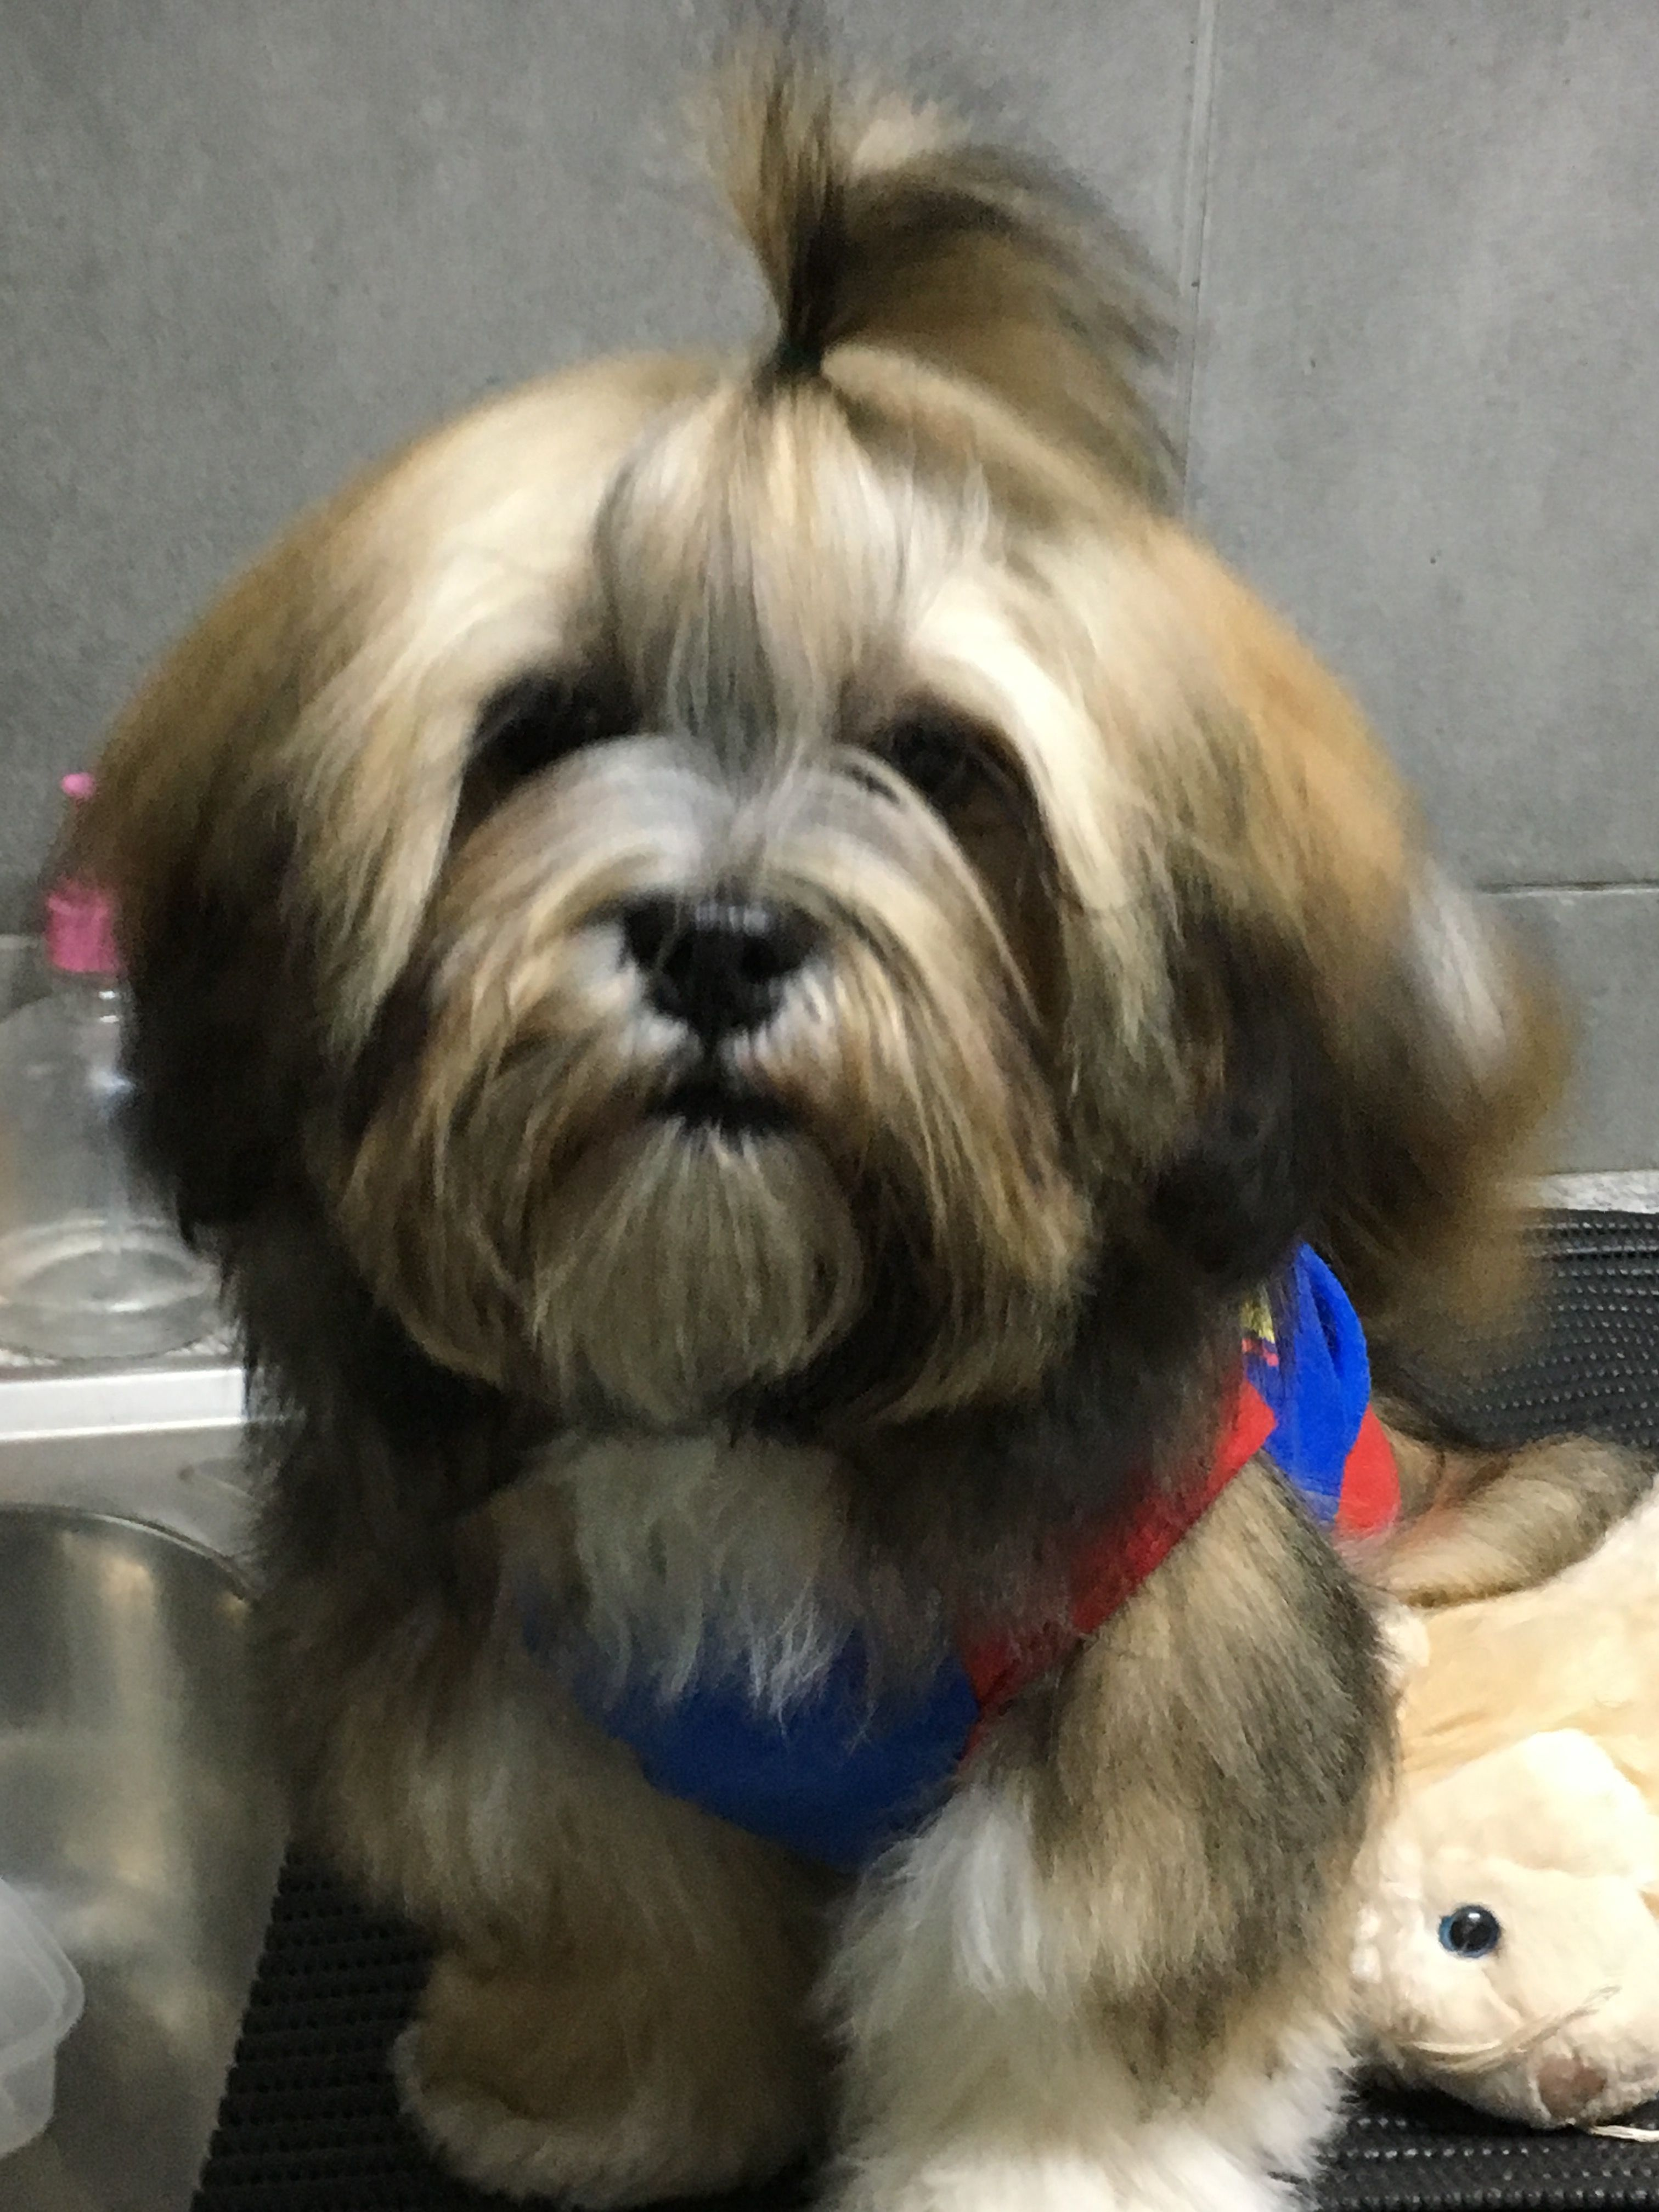 Lhasa Apso Aum S First Top Knot Lhasa Apso Shih Tzu Dog Grooming